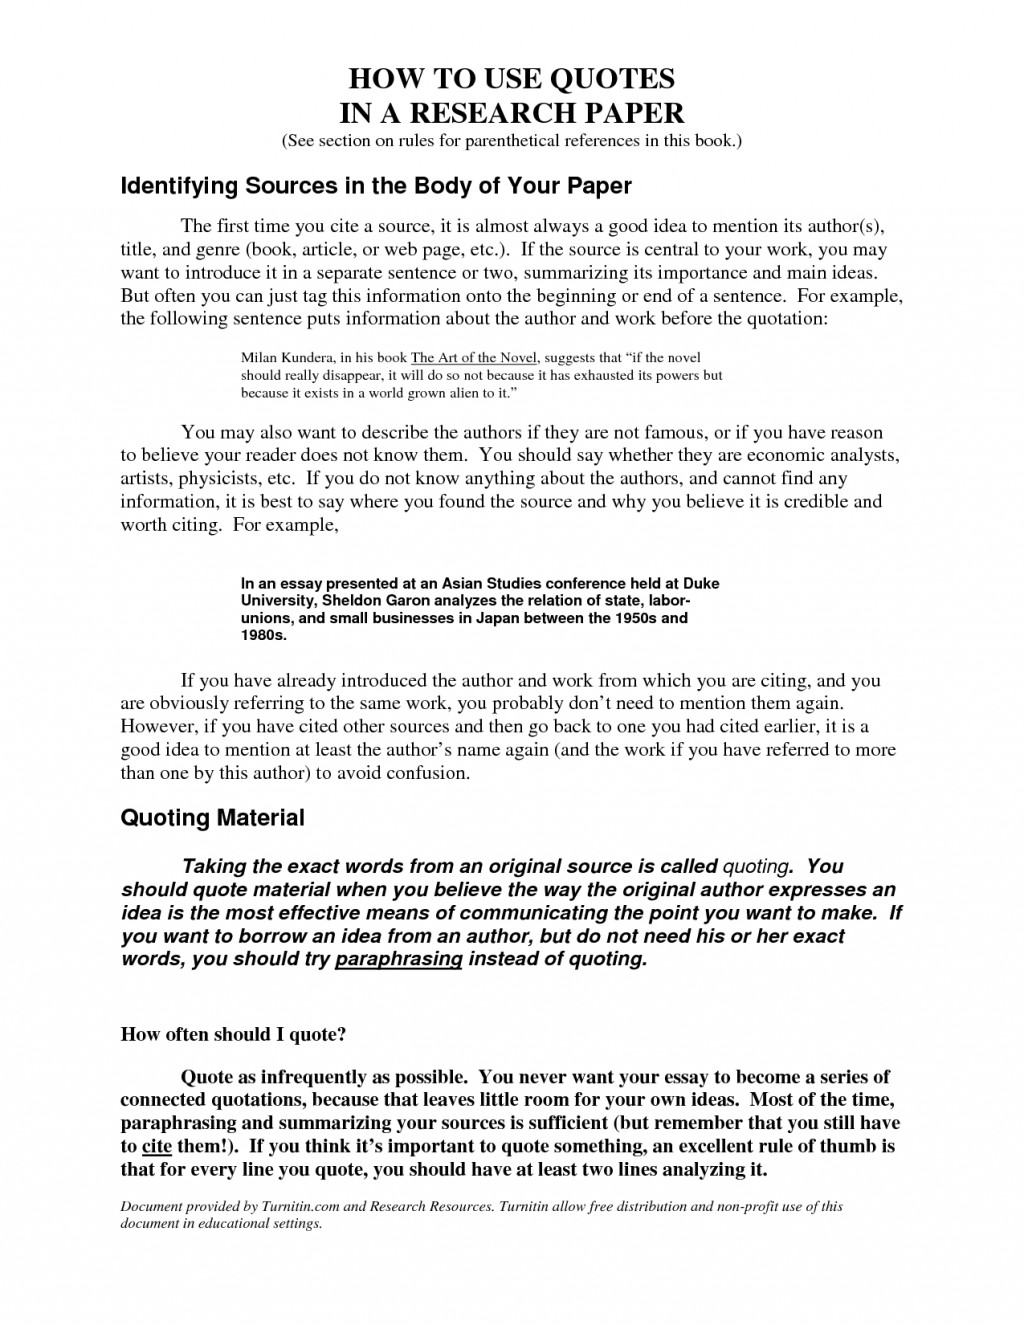 001 How To Use Quotes In An Essay Best Solutions Of Writing Essays Marvelous Embedding On Quotestopics Fearsome Apa Format Large Argumentative Large